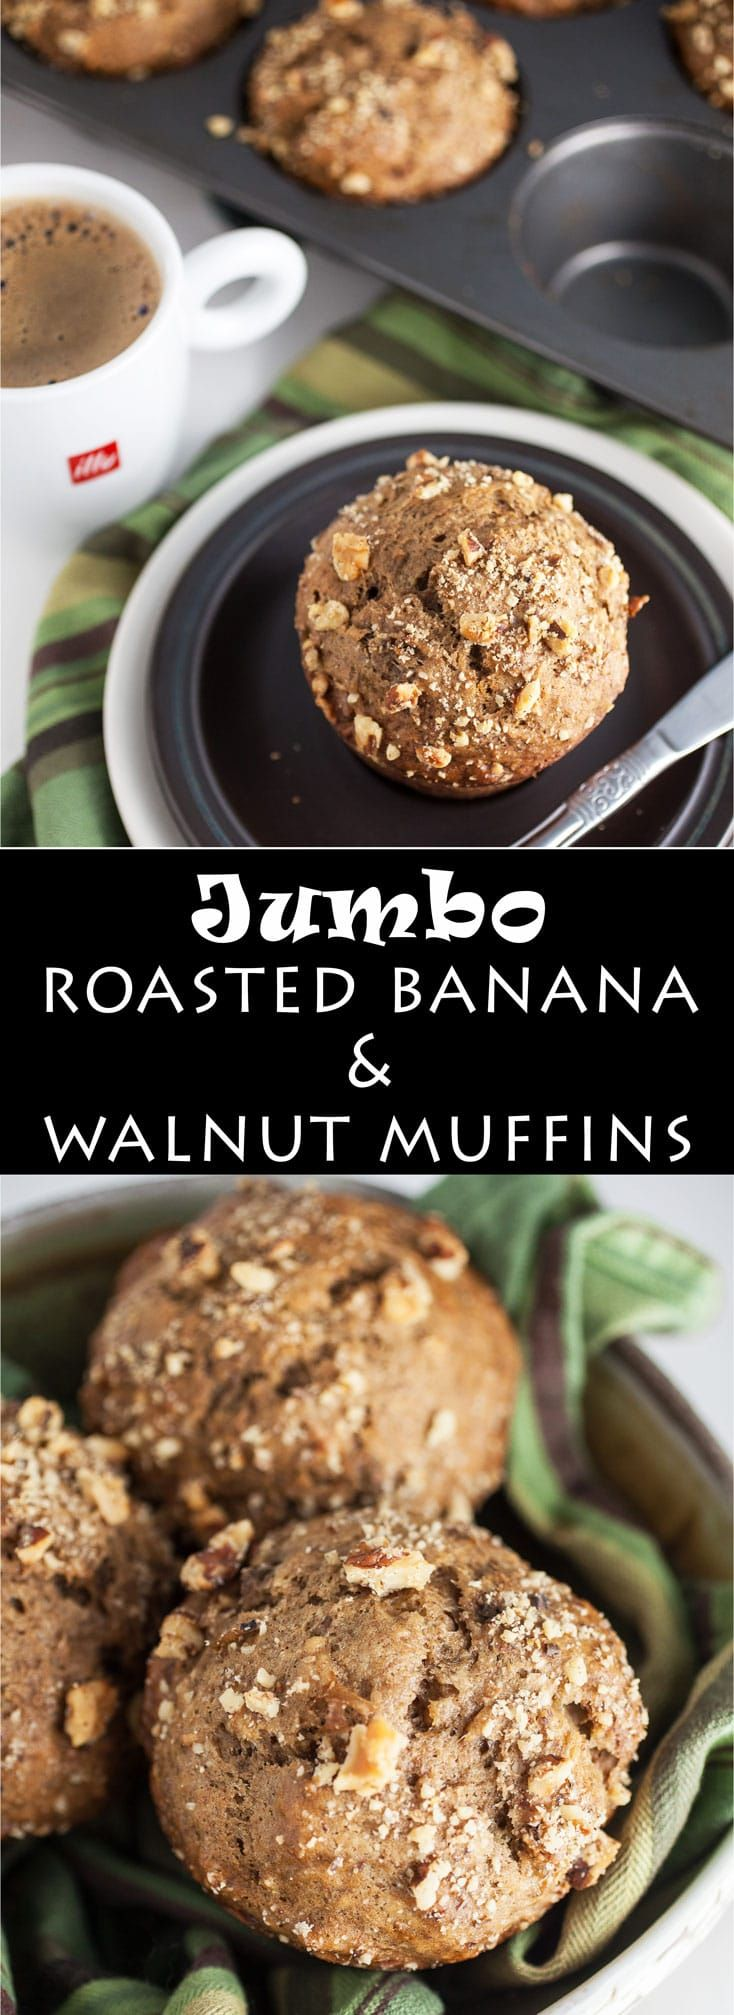 These banana walnut muffins are super moist and easy to make. The roasted banana really amps up the flavor. They are absolutely perfect with a freshly brewed cup of coffee! #ad #illy #illyinspires